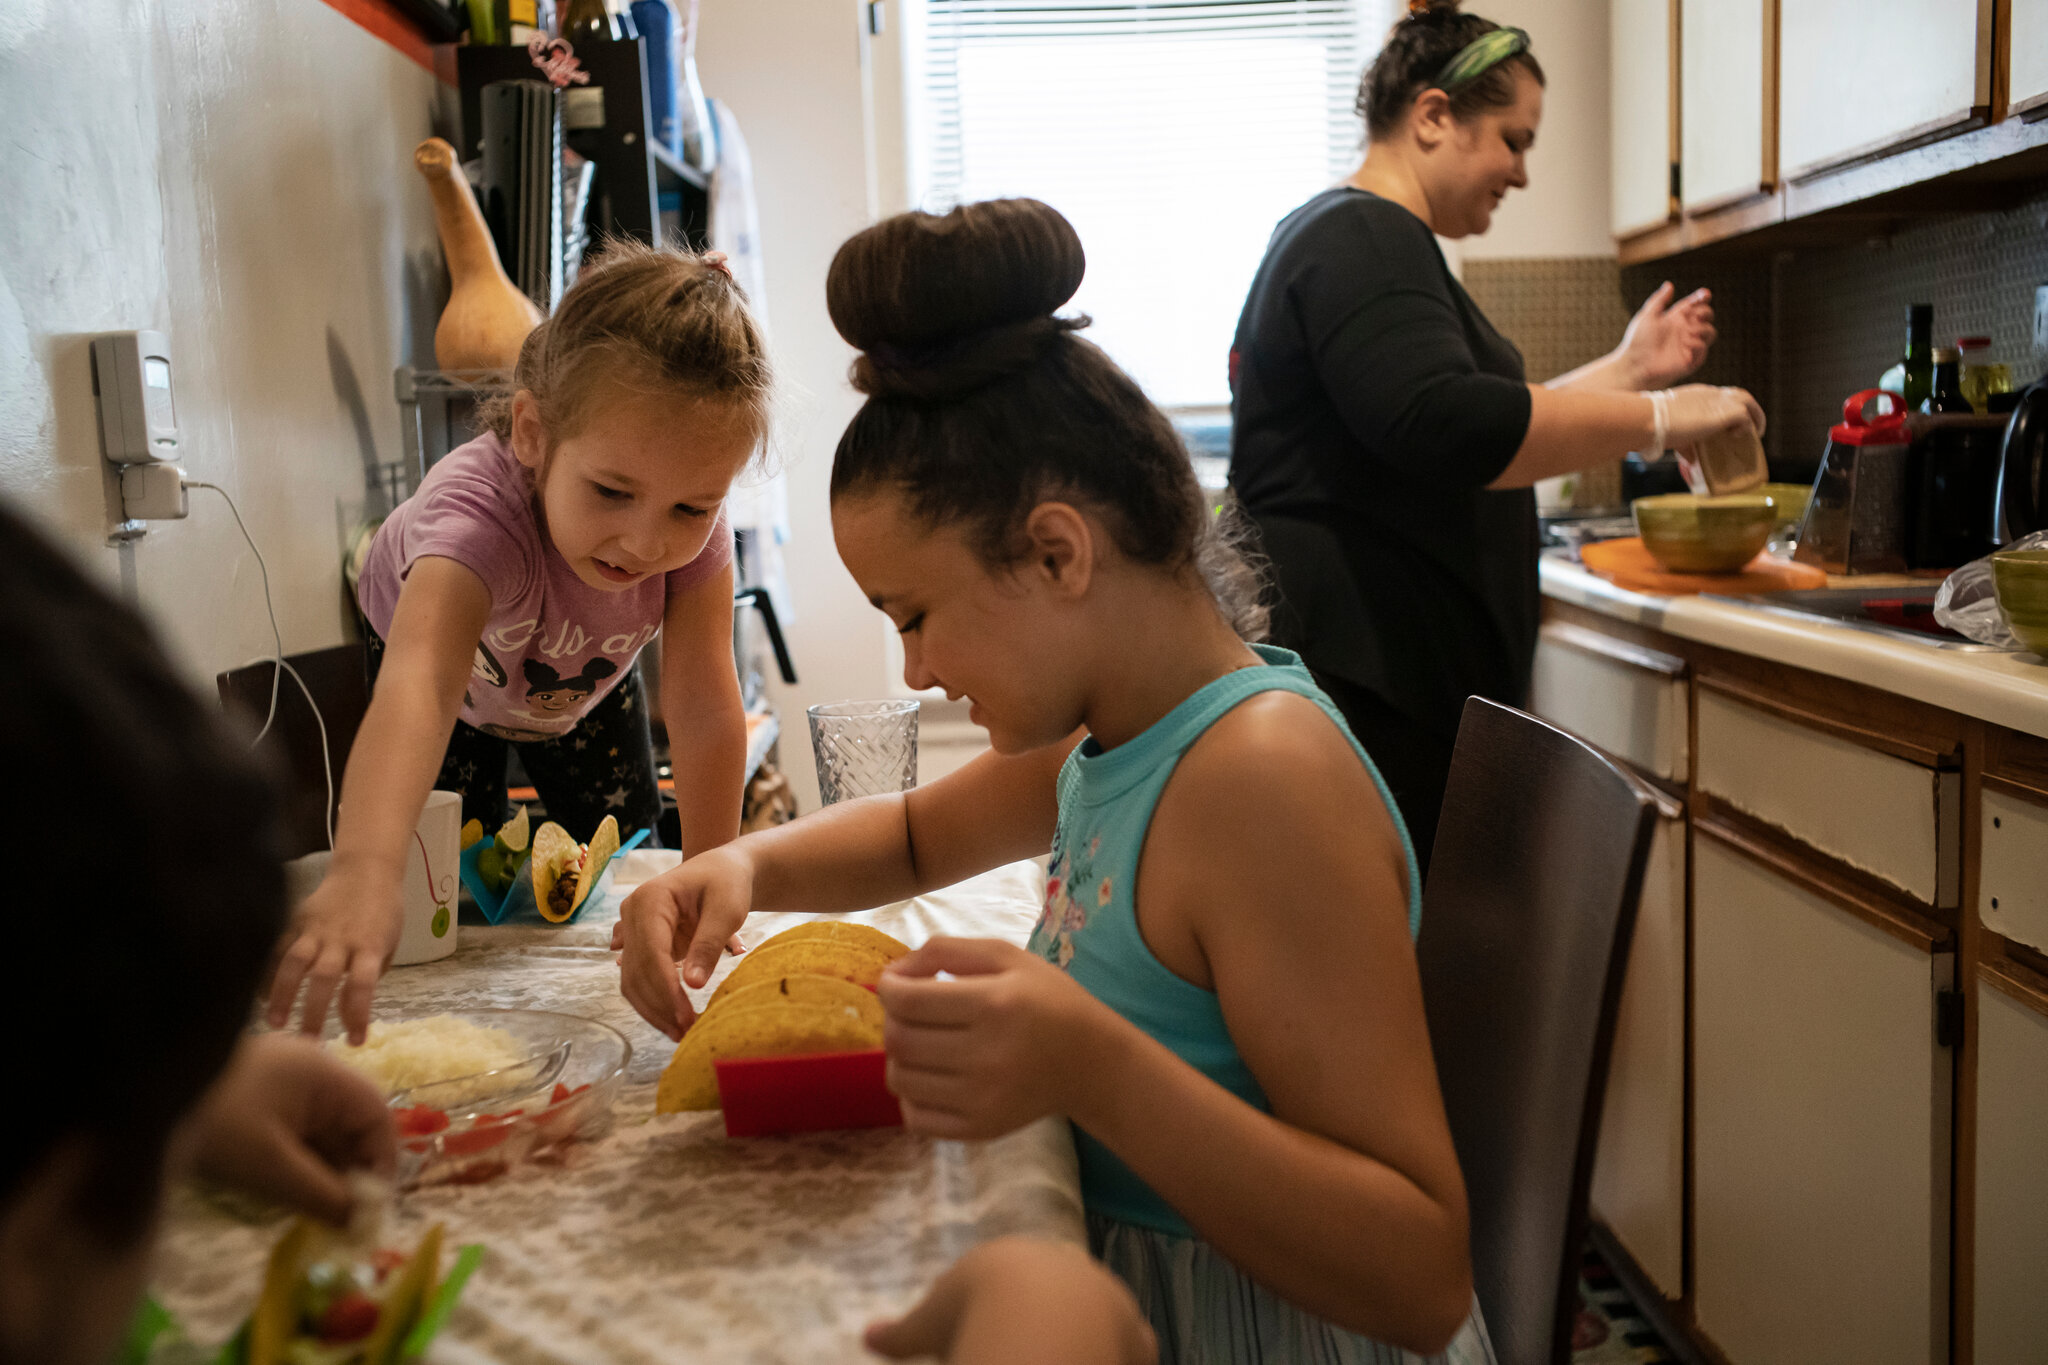 Yuliya and her little girls are very happy that Masbia Soup Kitchen Network share free food to make it possible to her prepare delicious meals. The photo was taken by Todd Heisler of the New York Times